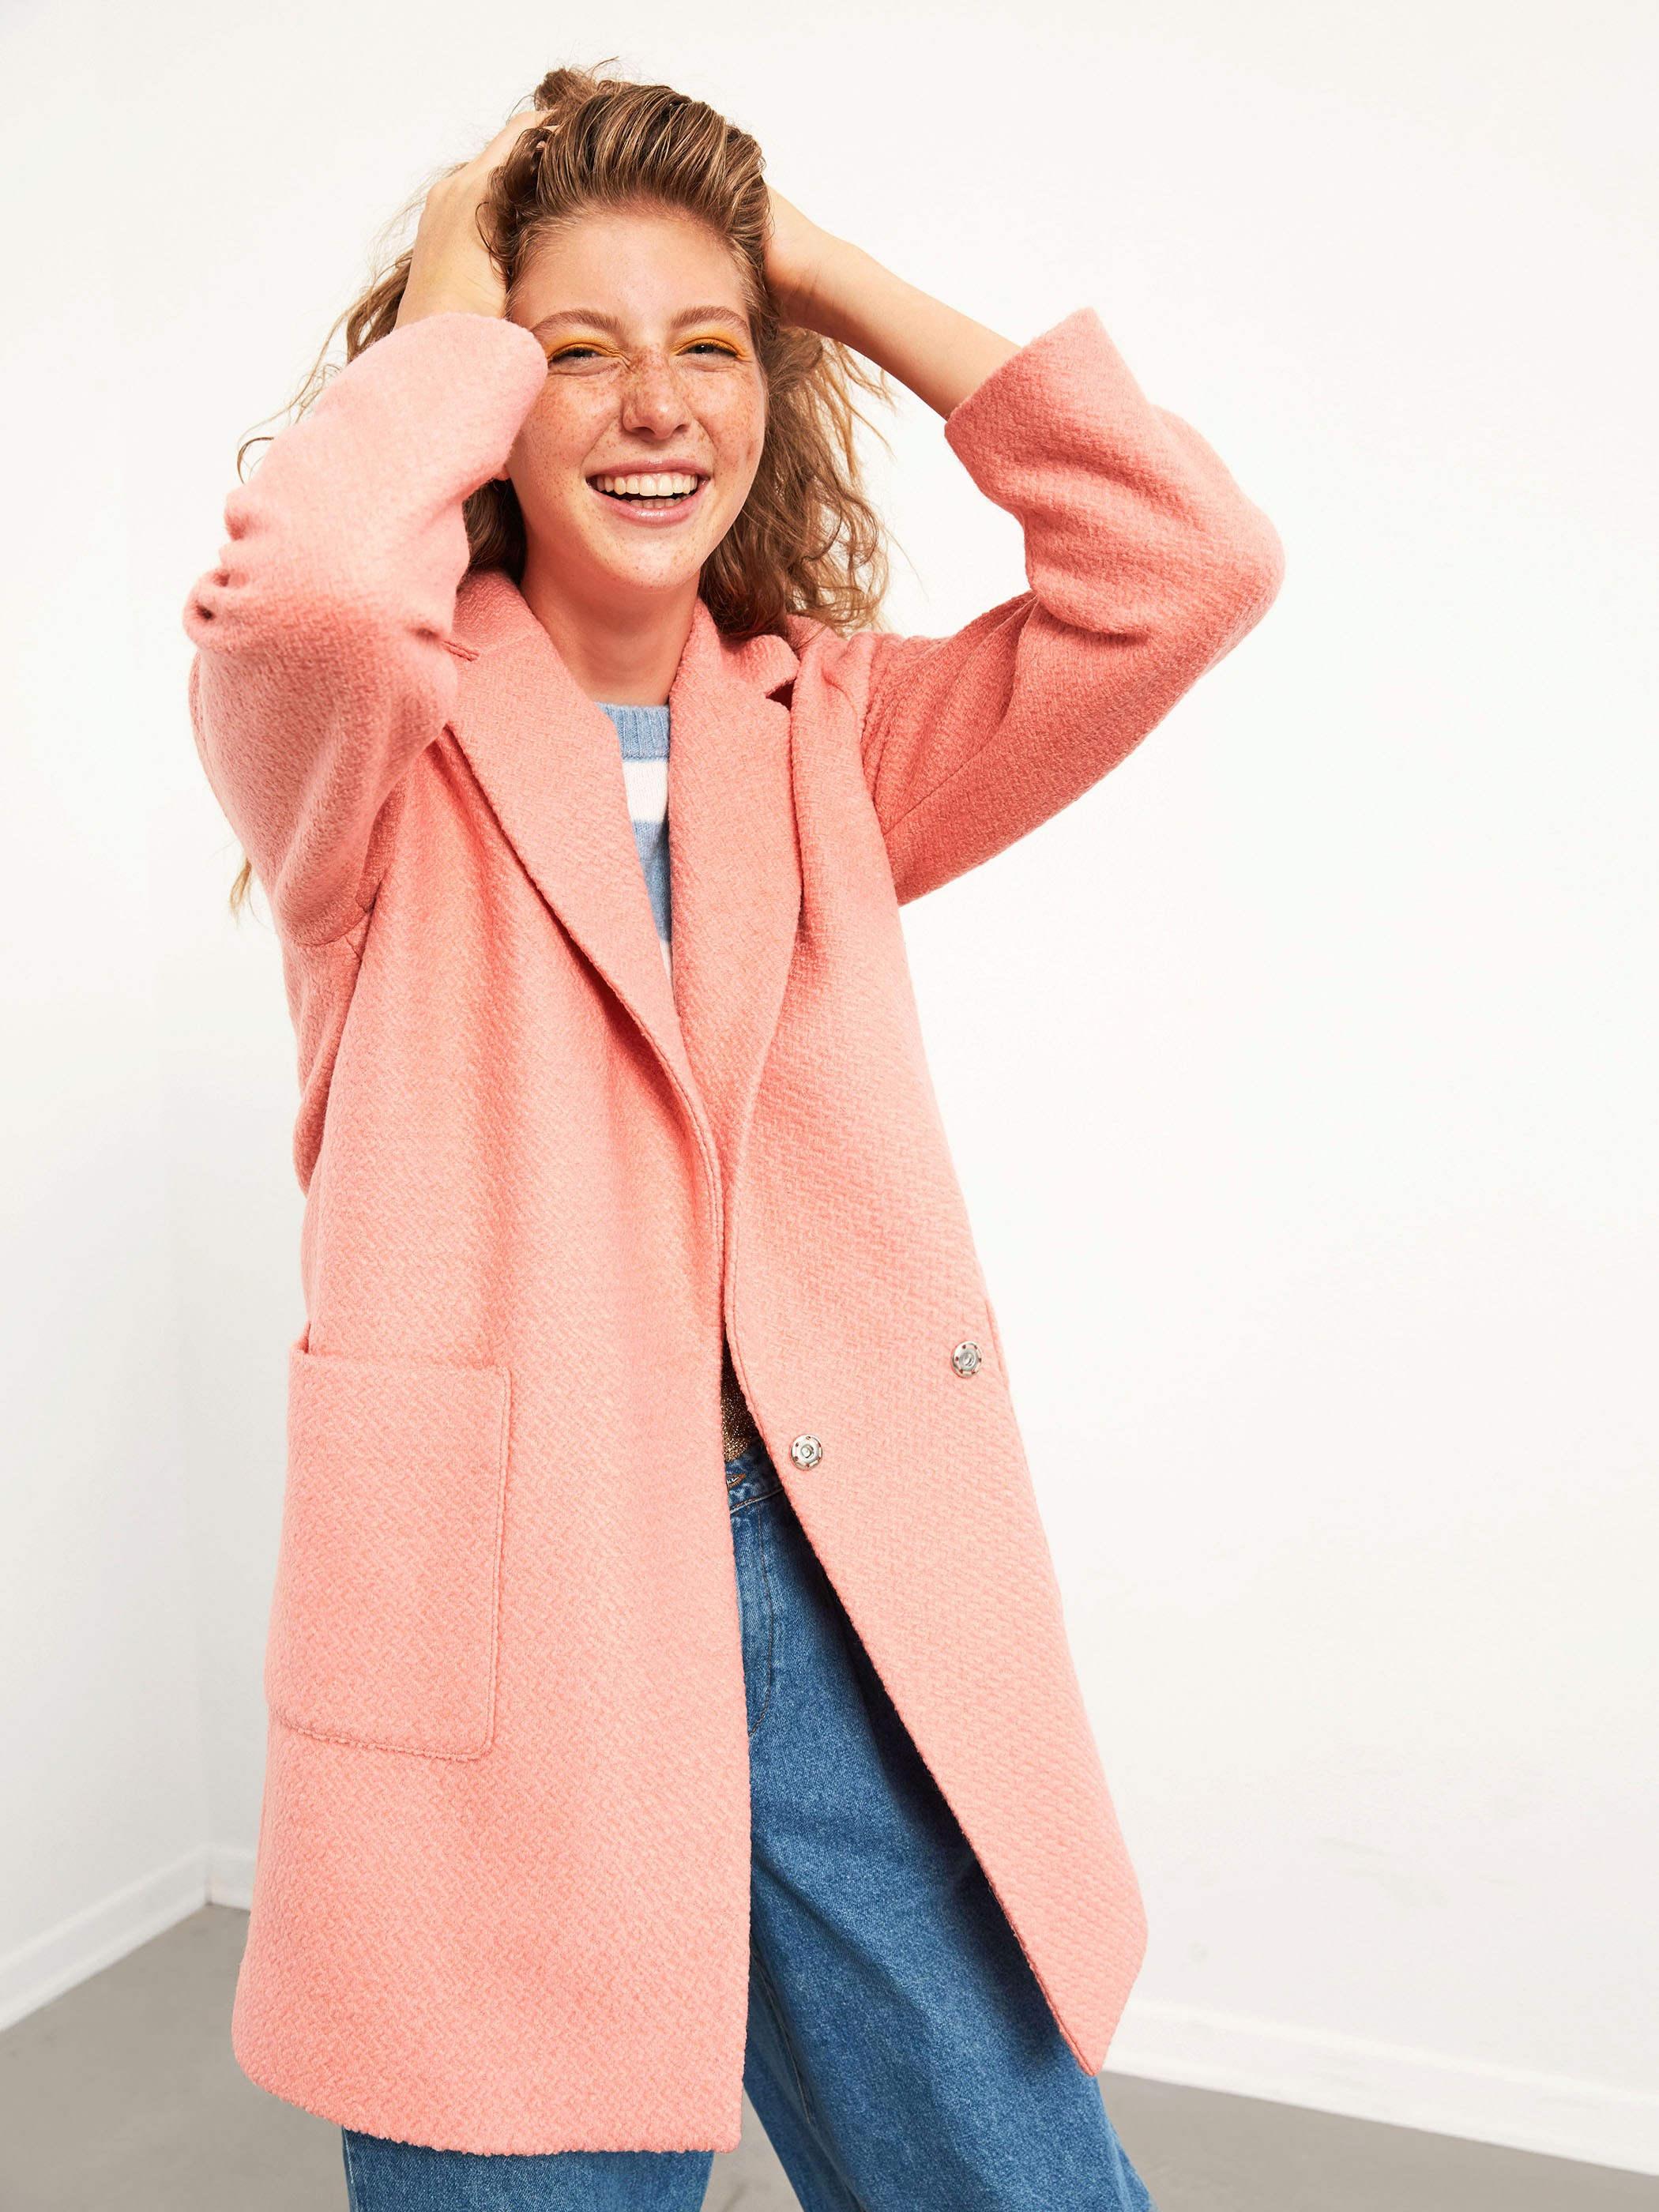 PINK - XSIDE Textured Fabric Thick Coat with Pockets - 0WDG44Z8